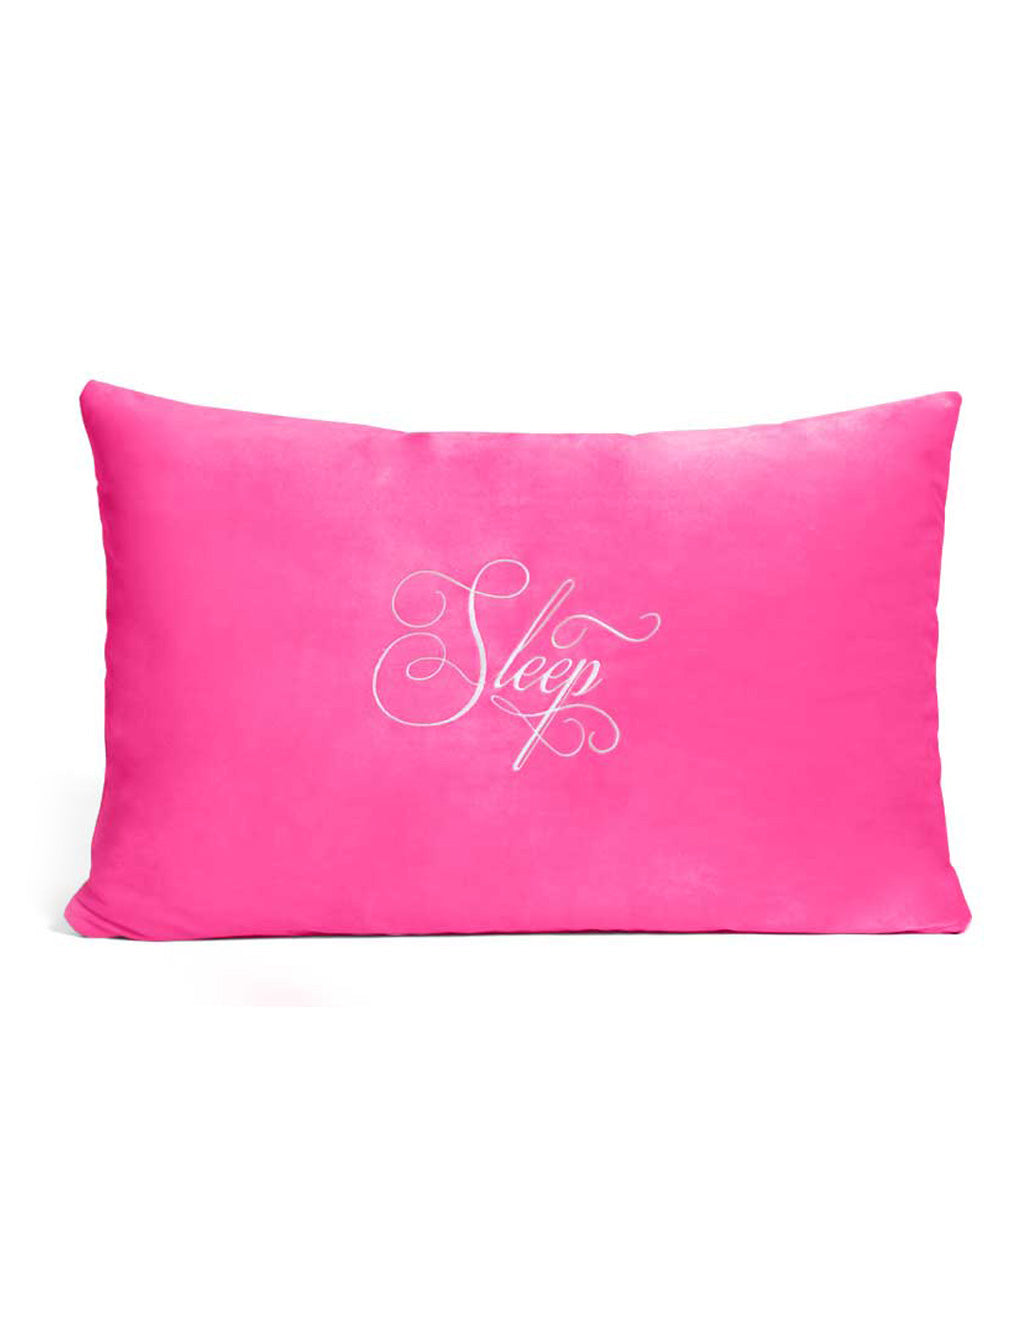 Liberator PillowTalk Sham- Pink- Front